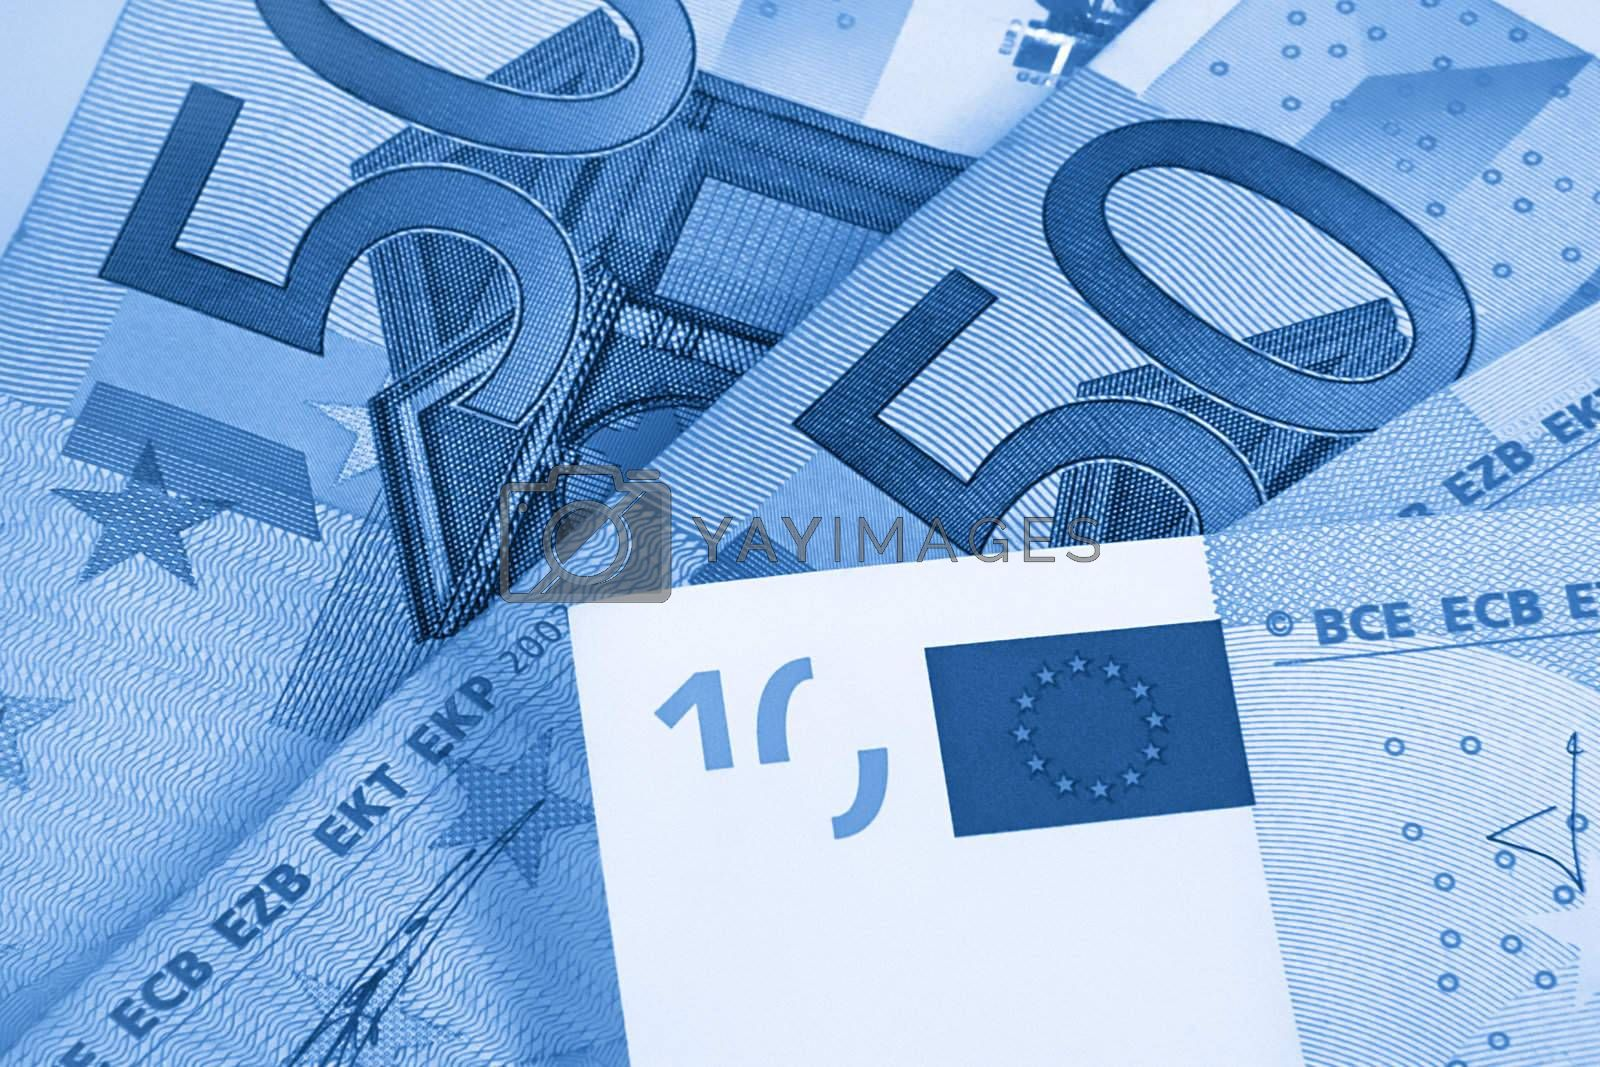 fragment of fifty and ten euro money, blue abstract background